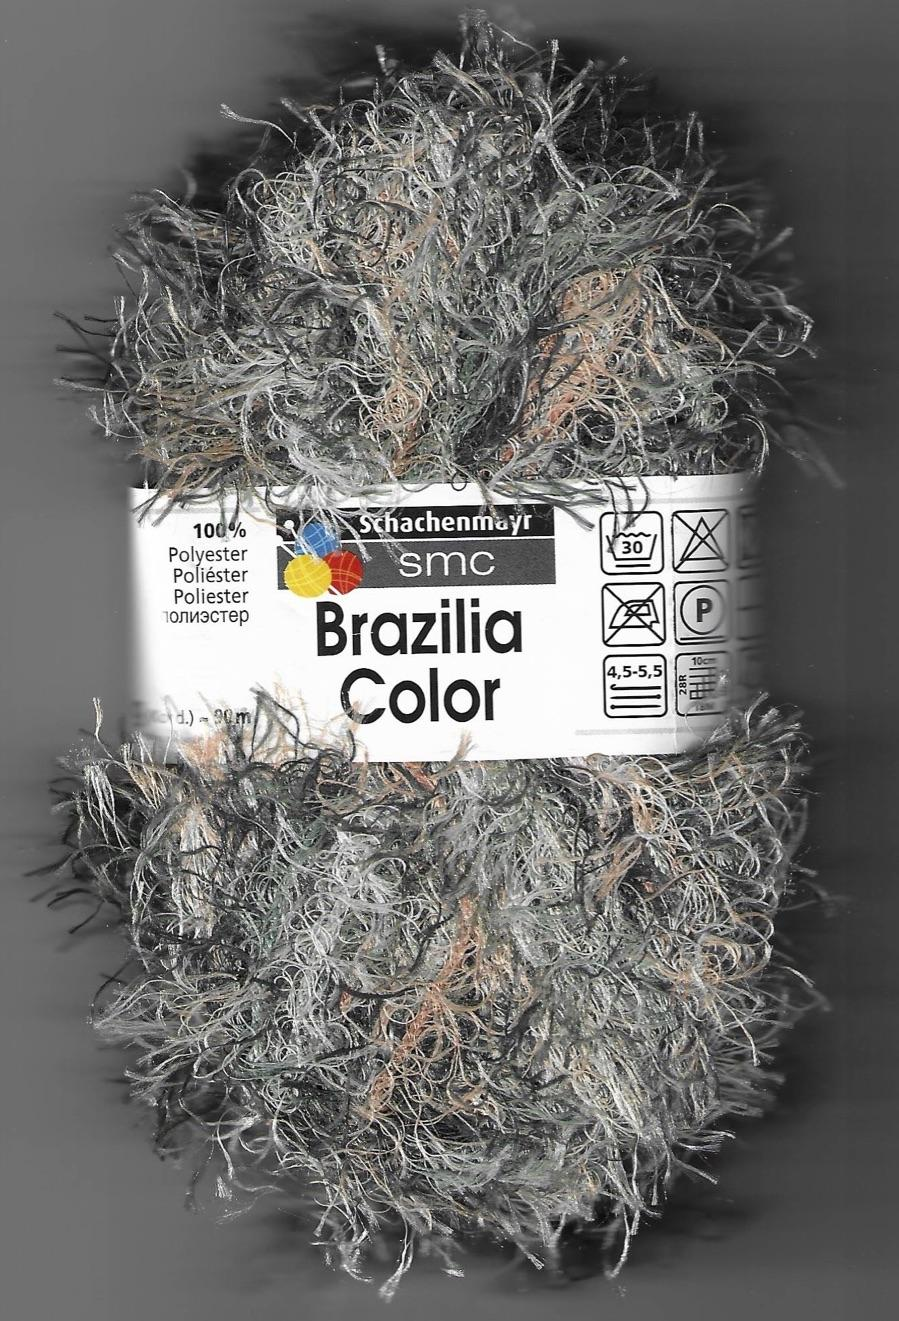 Brazilia Color Farbe: 00124